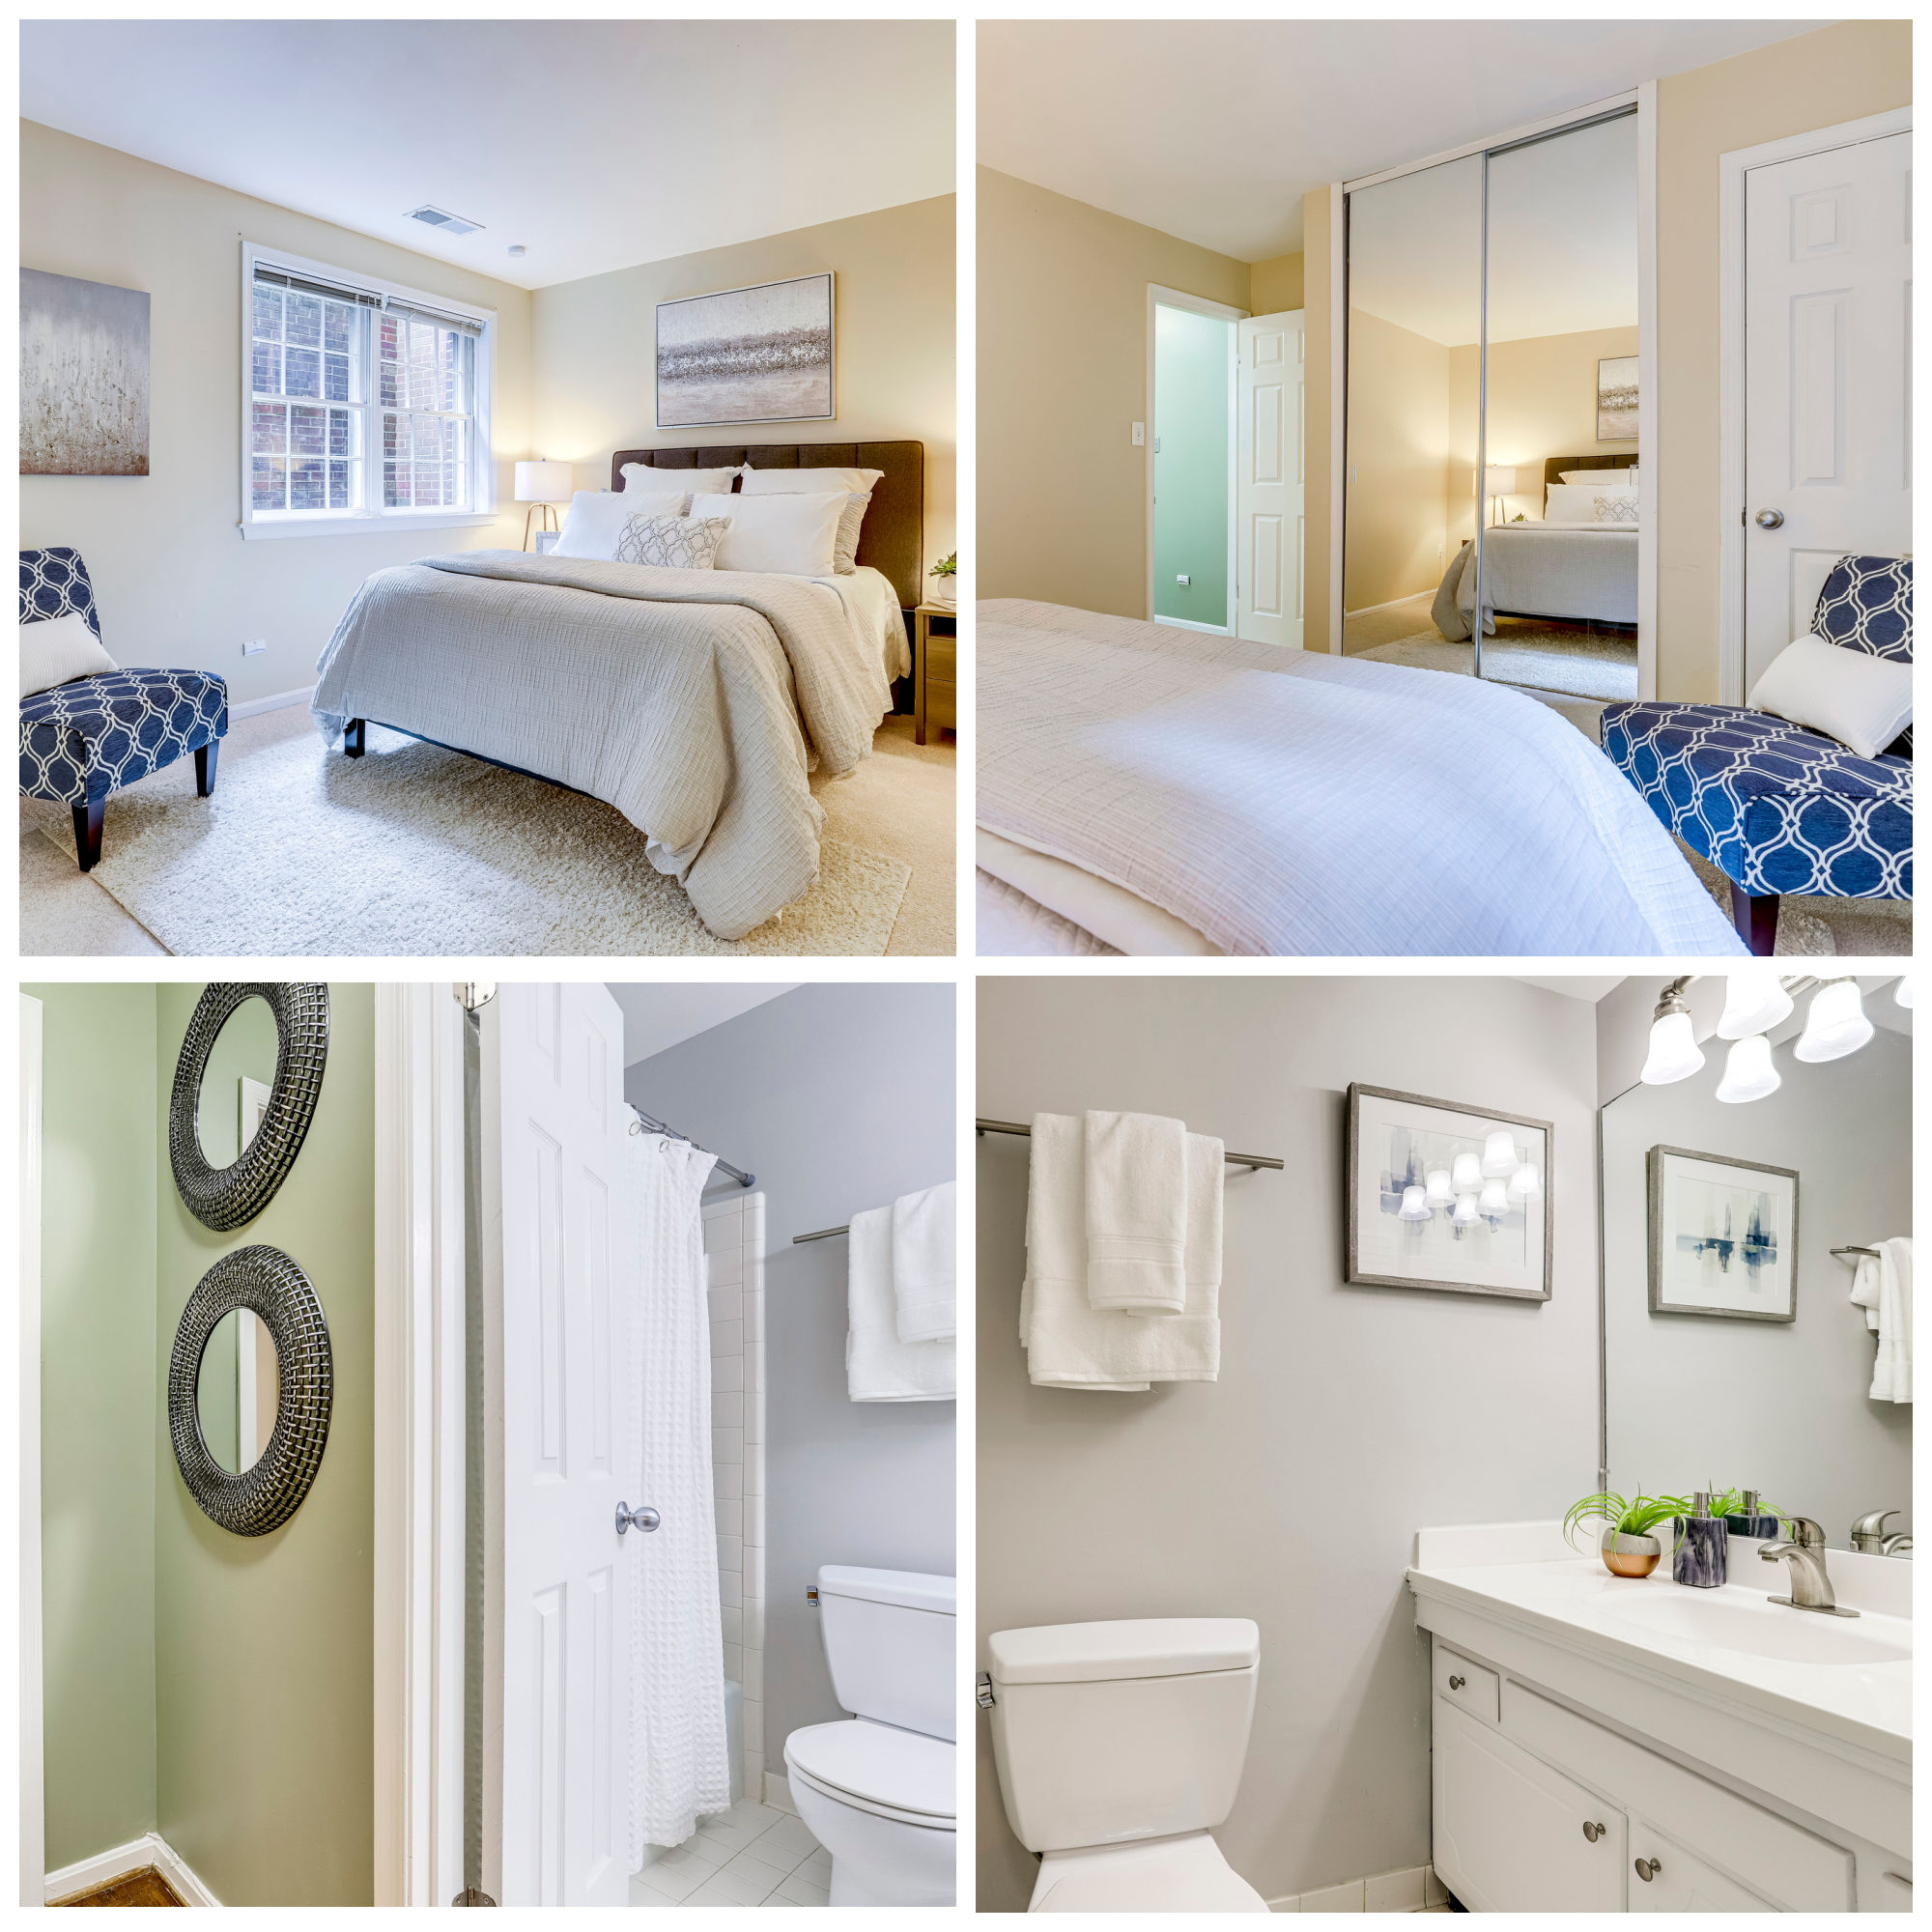 1947 N Calvert St #1, Arlington- Second Bedroom and Bathroom